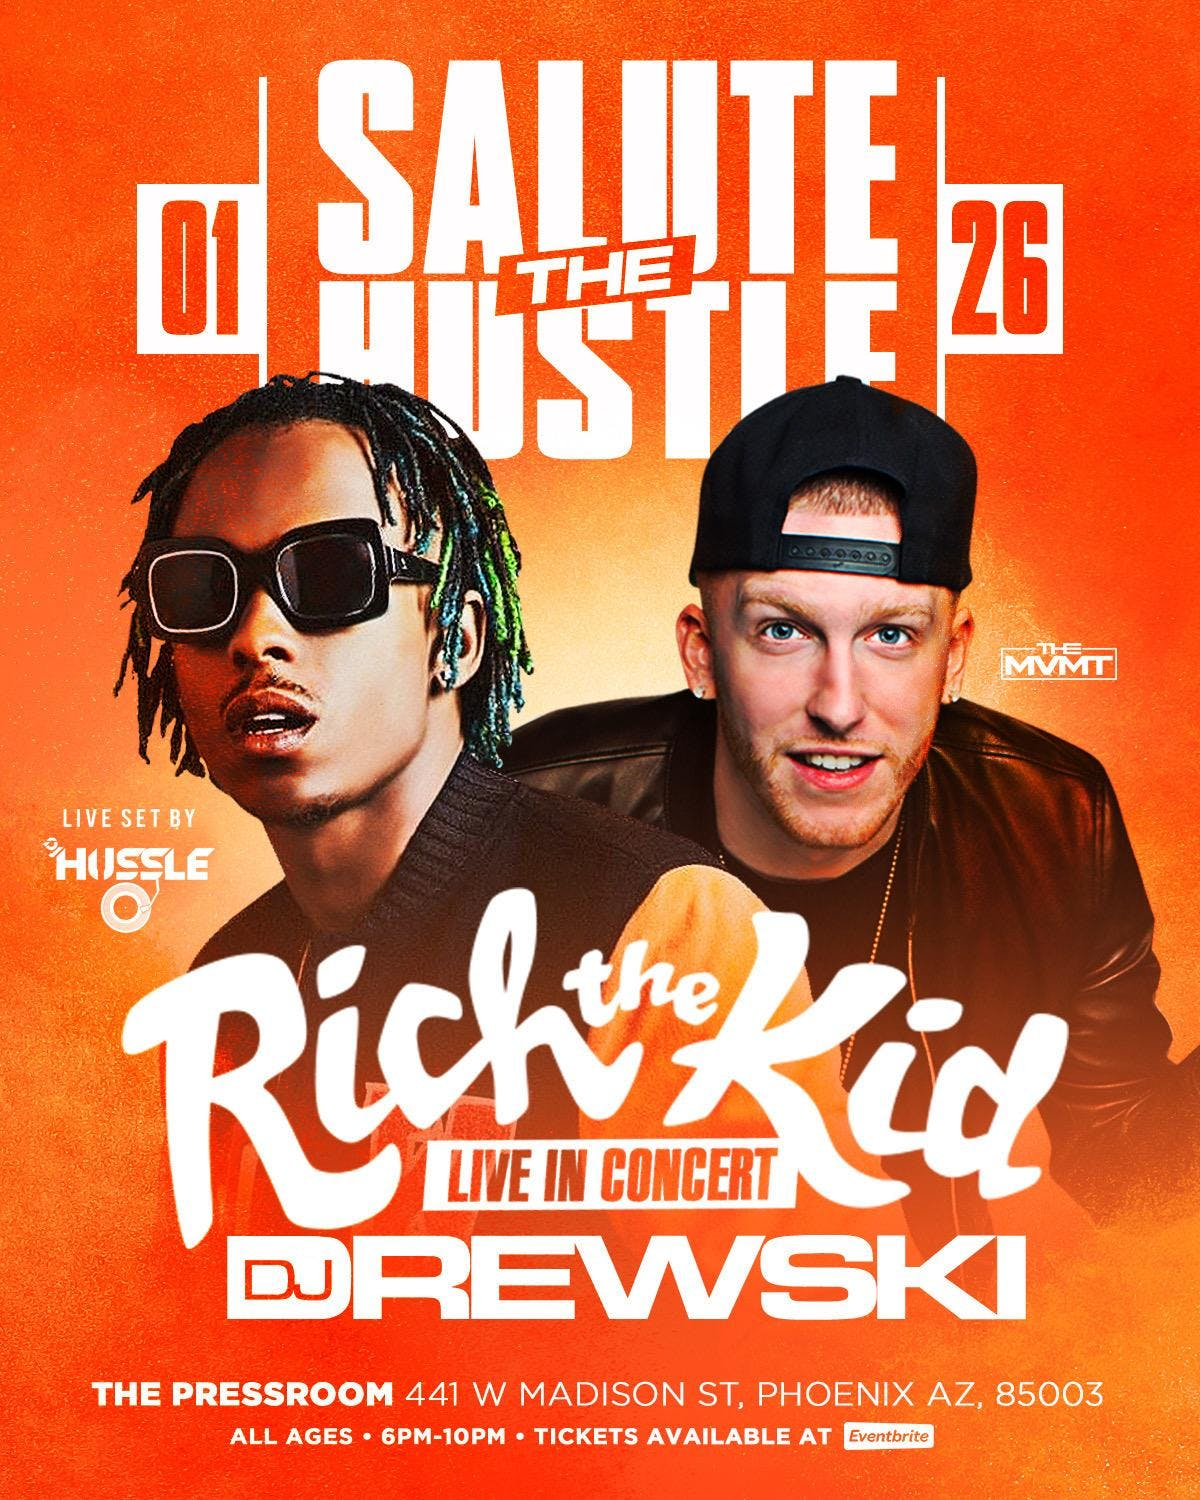 RICH THE KID @ The Pressroom